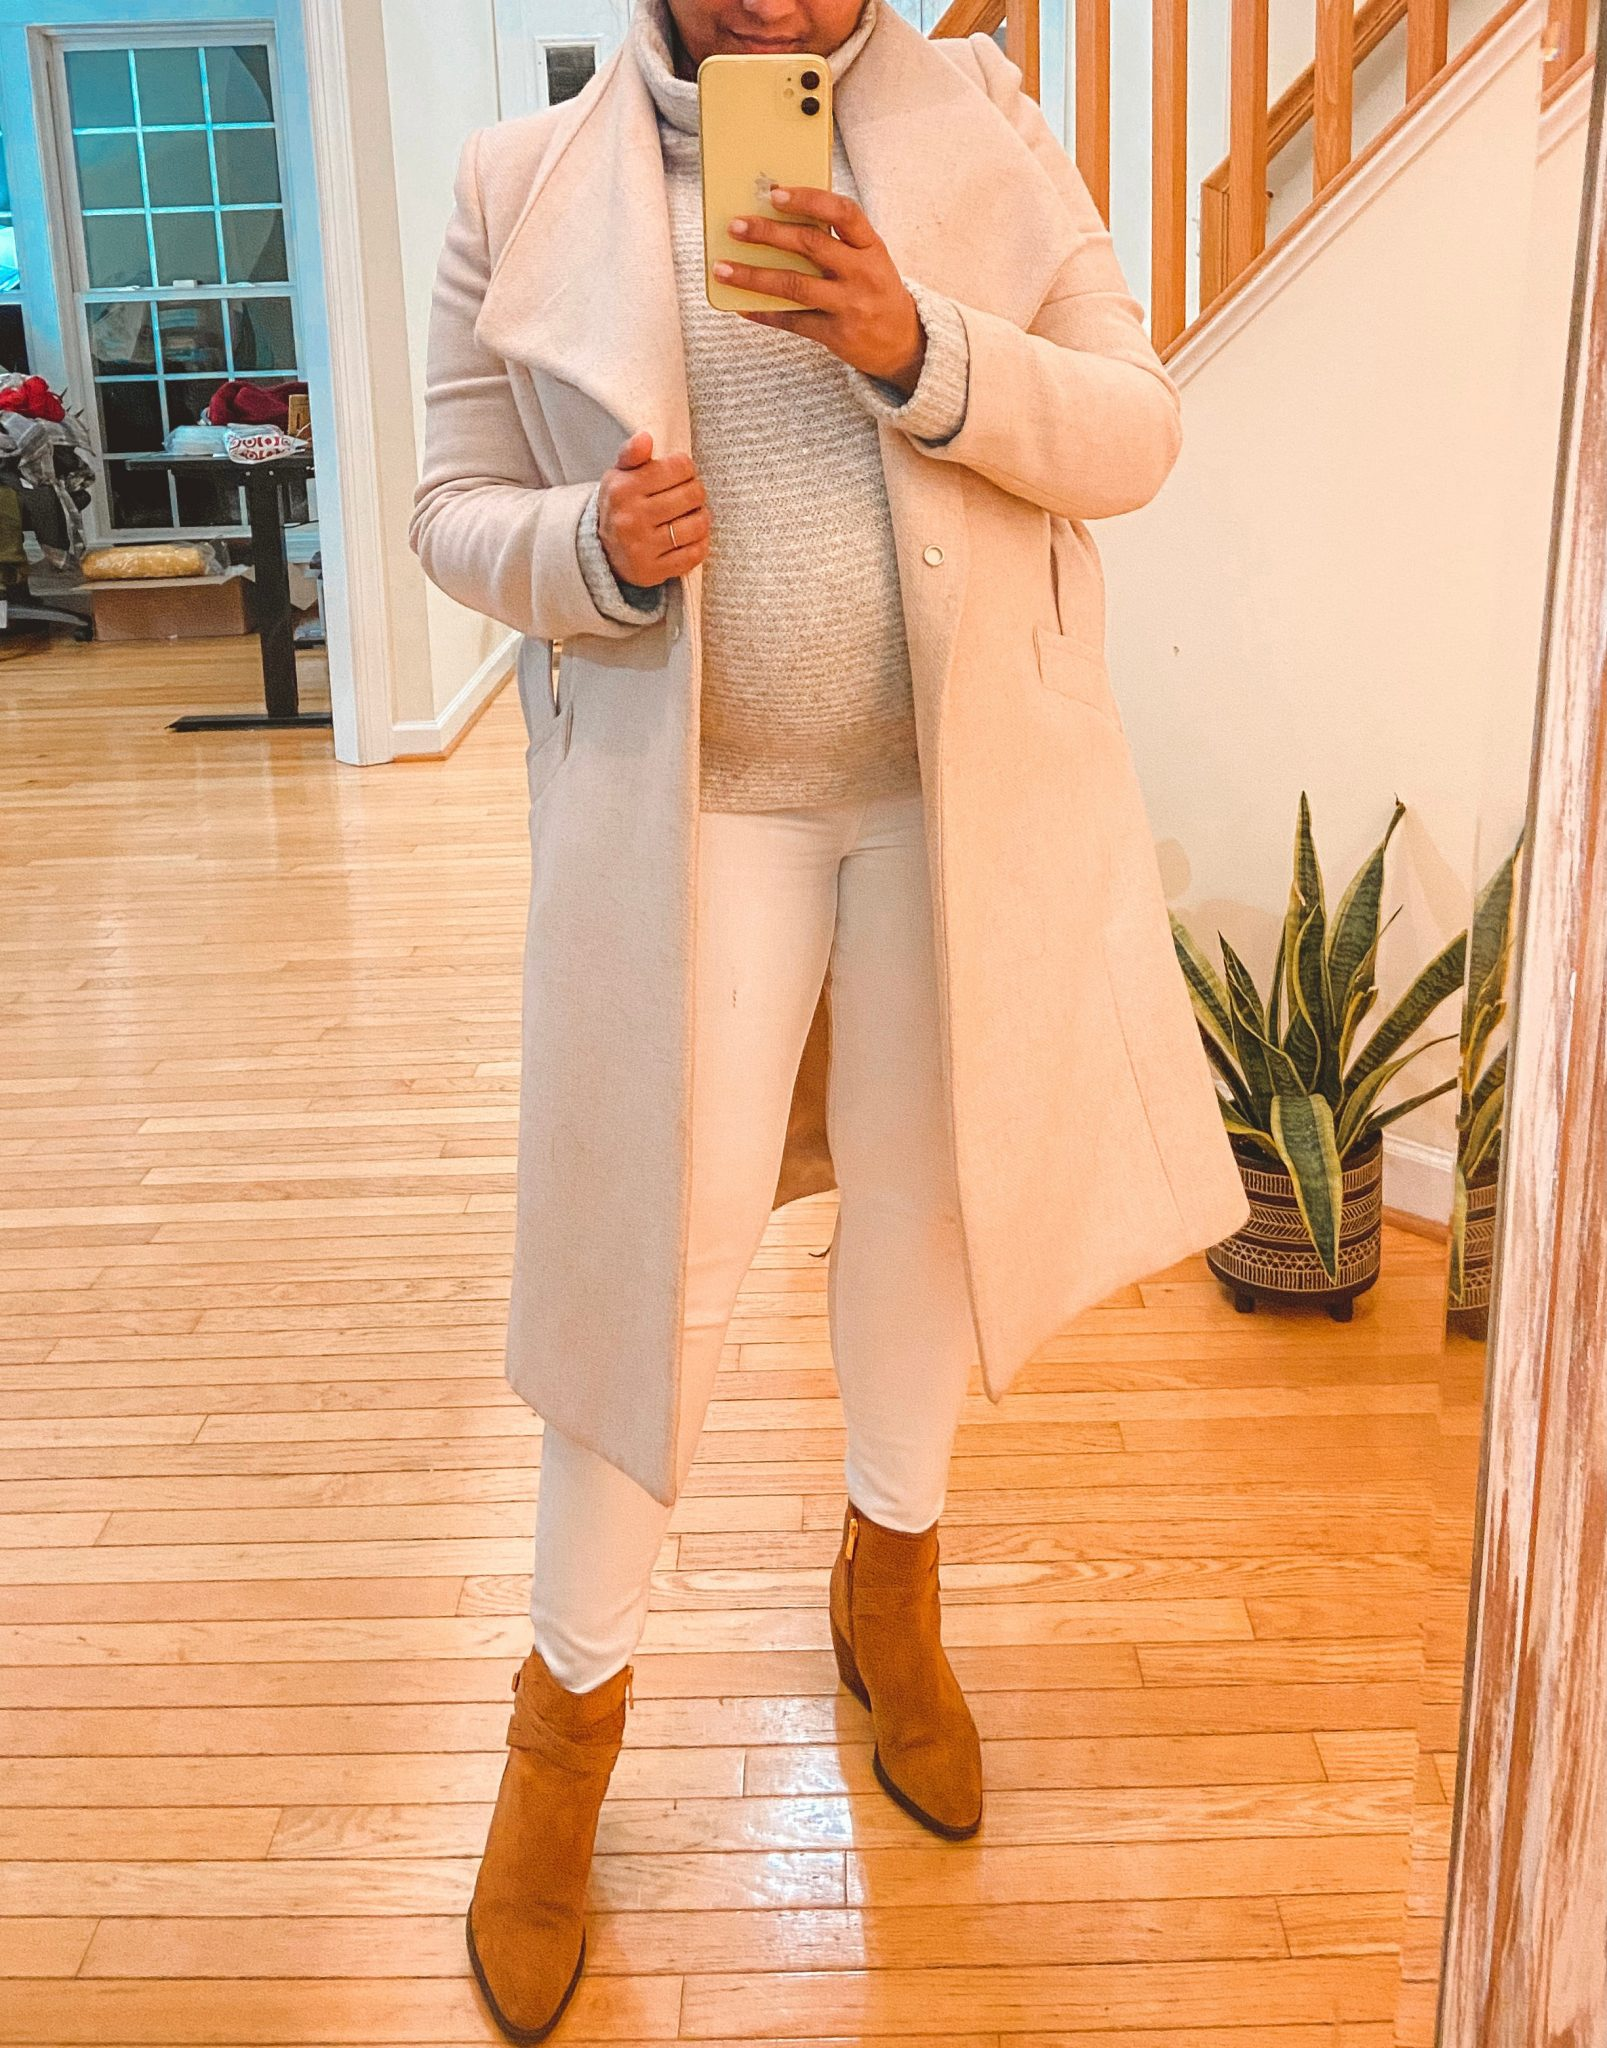 White Maternity Jeans by top Maryland modest fashion blogger, Dreaming Loud: image of a pregnant woman wearing an Amazon Daily Ritual Mock Neck Sweater, Mango Maternity high waisted jeans in white, Mango wrap coat, Naturalizer Fenya Booties